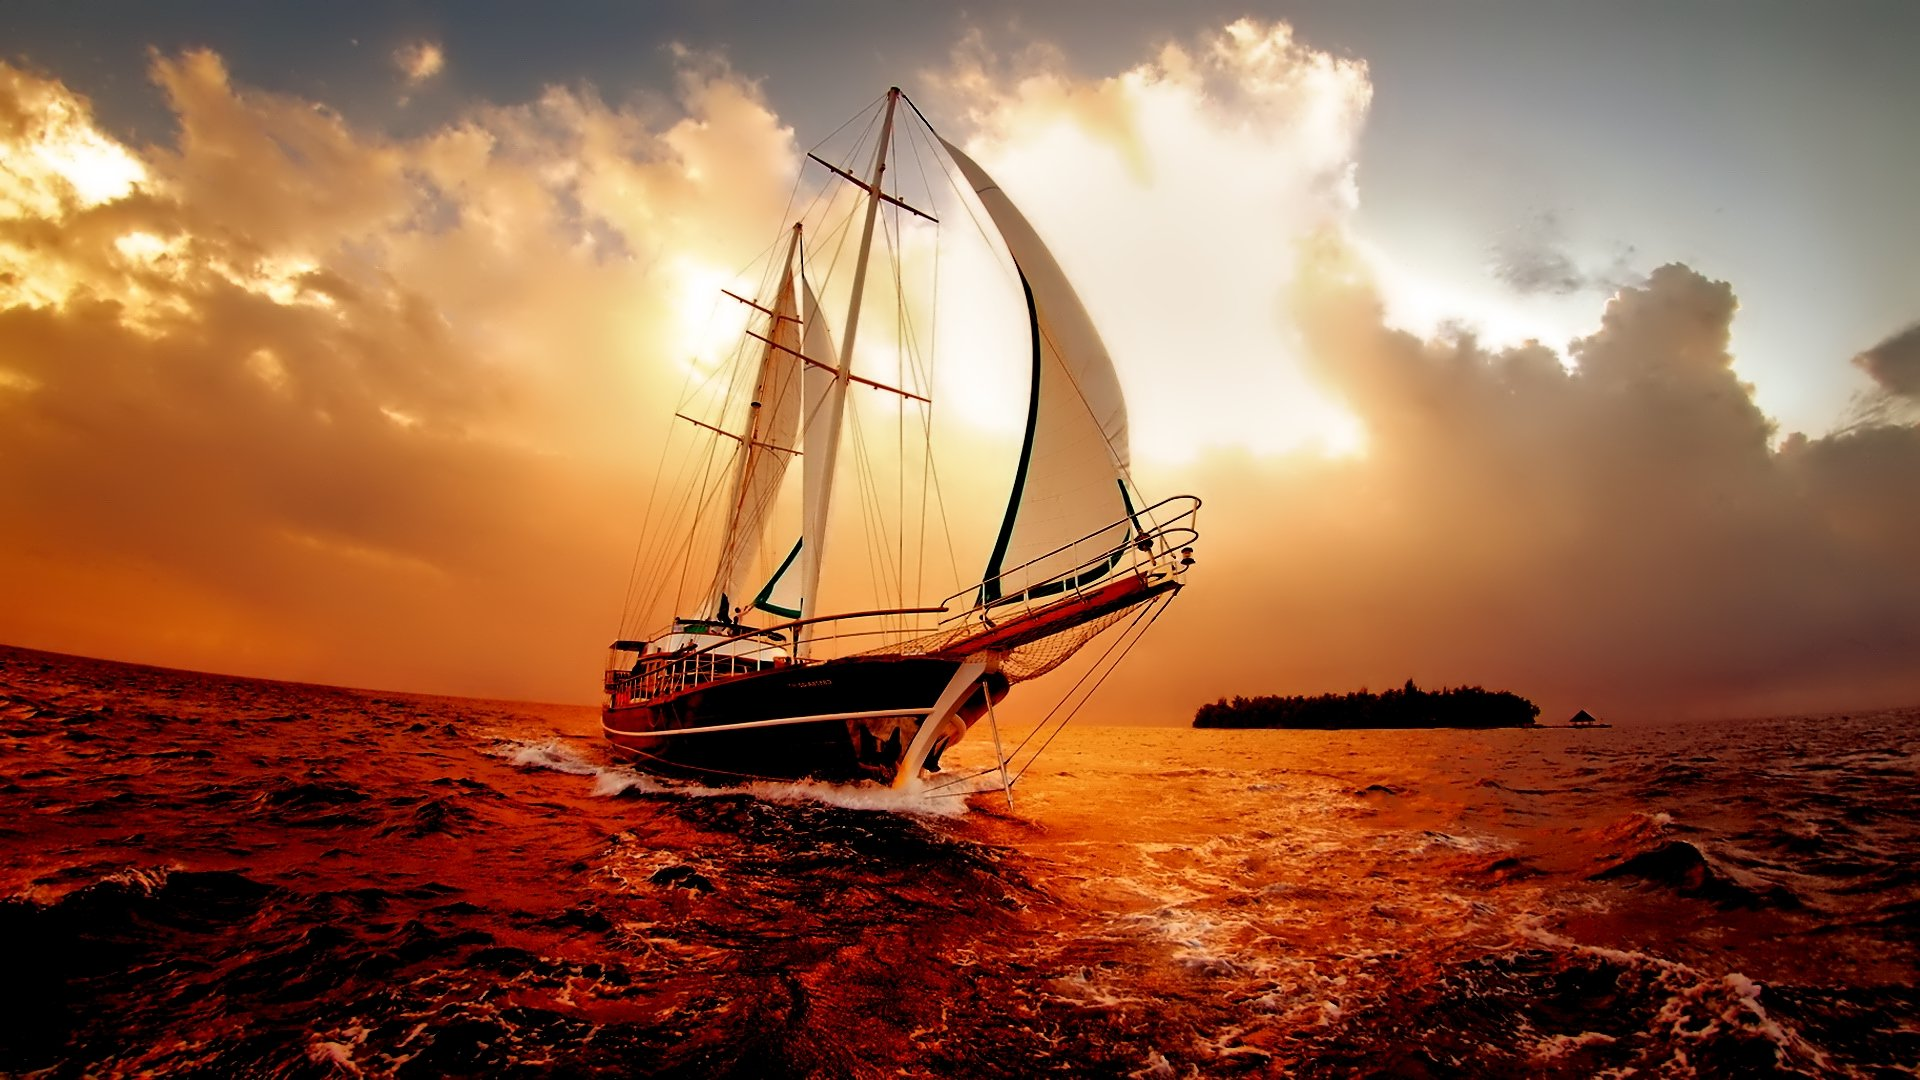 Sailing Wallpapers HD - WallpaperSafari